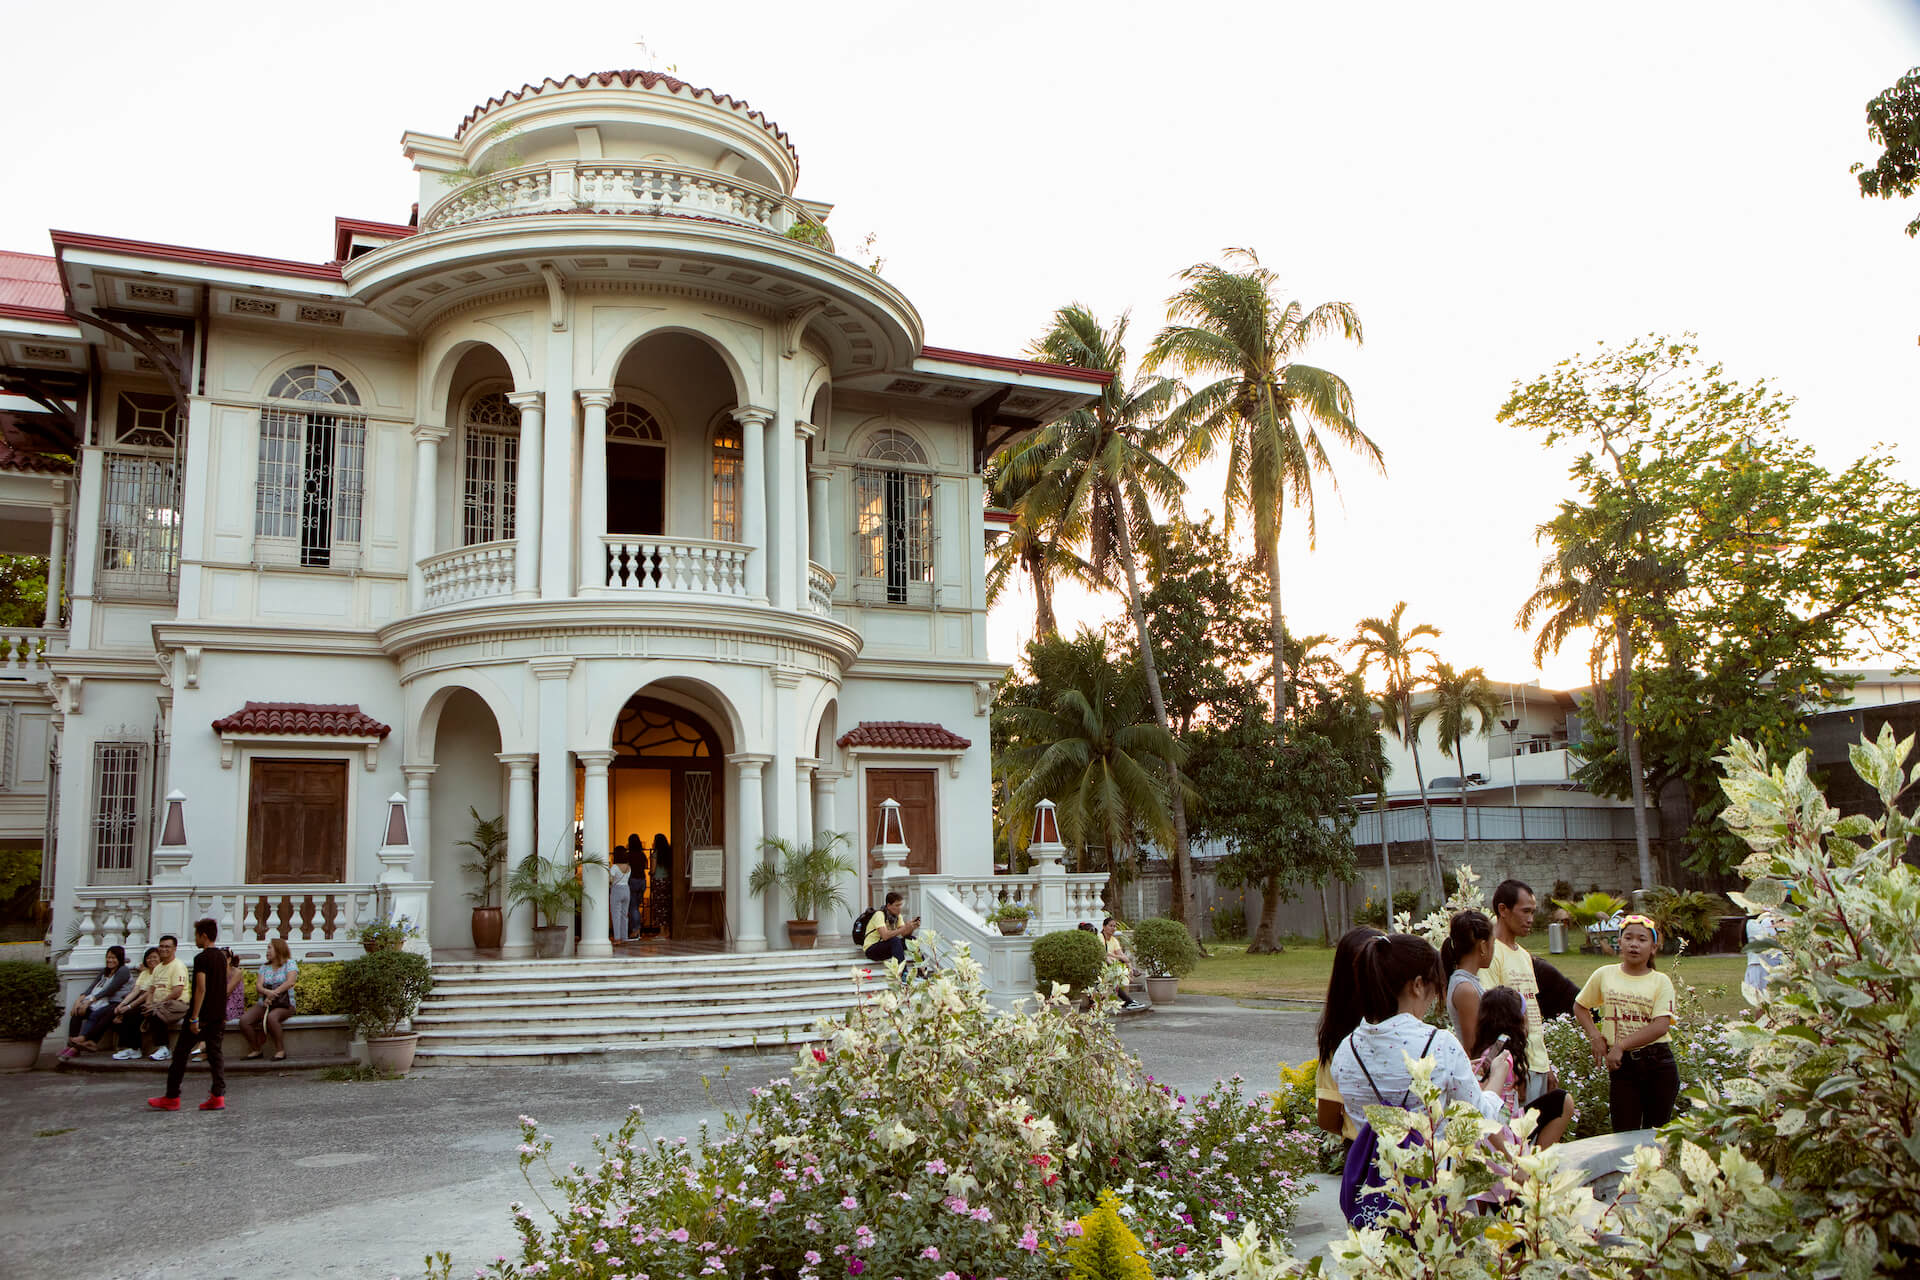 Writer Karla Quimsing reminisces on the Iloilo of her memories, and describes the Iloilo of today in three vignettes that come together to create an image of her hometown.